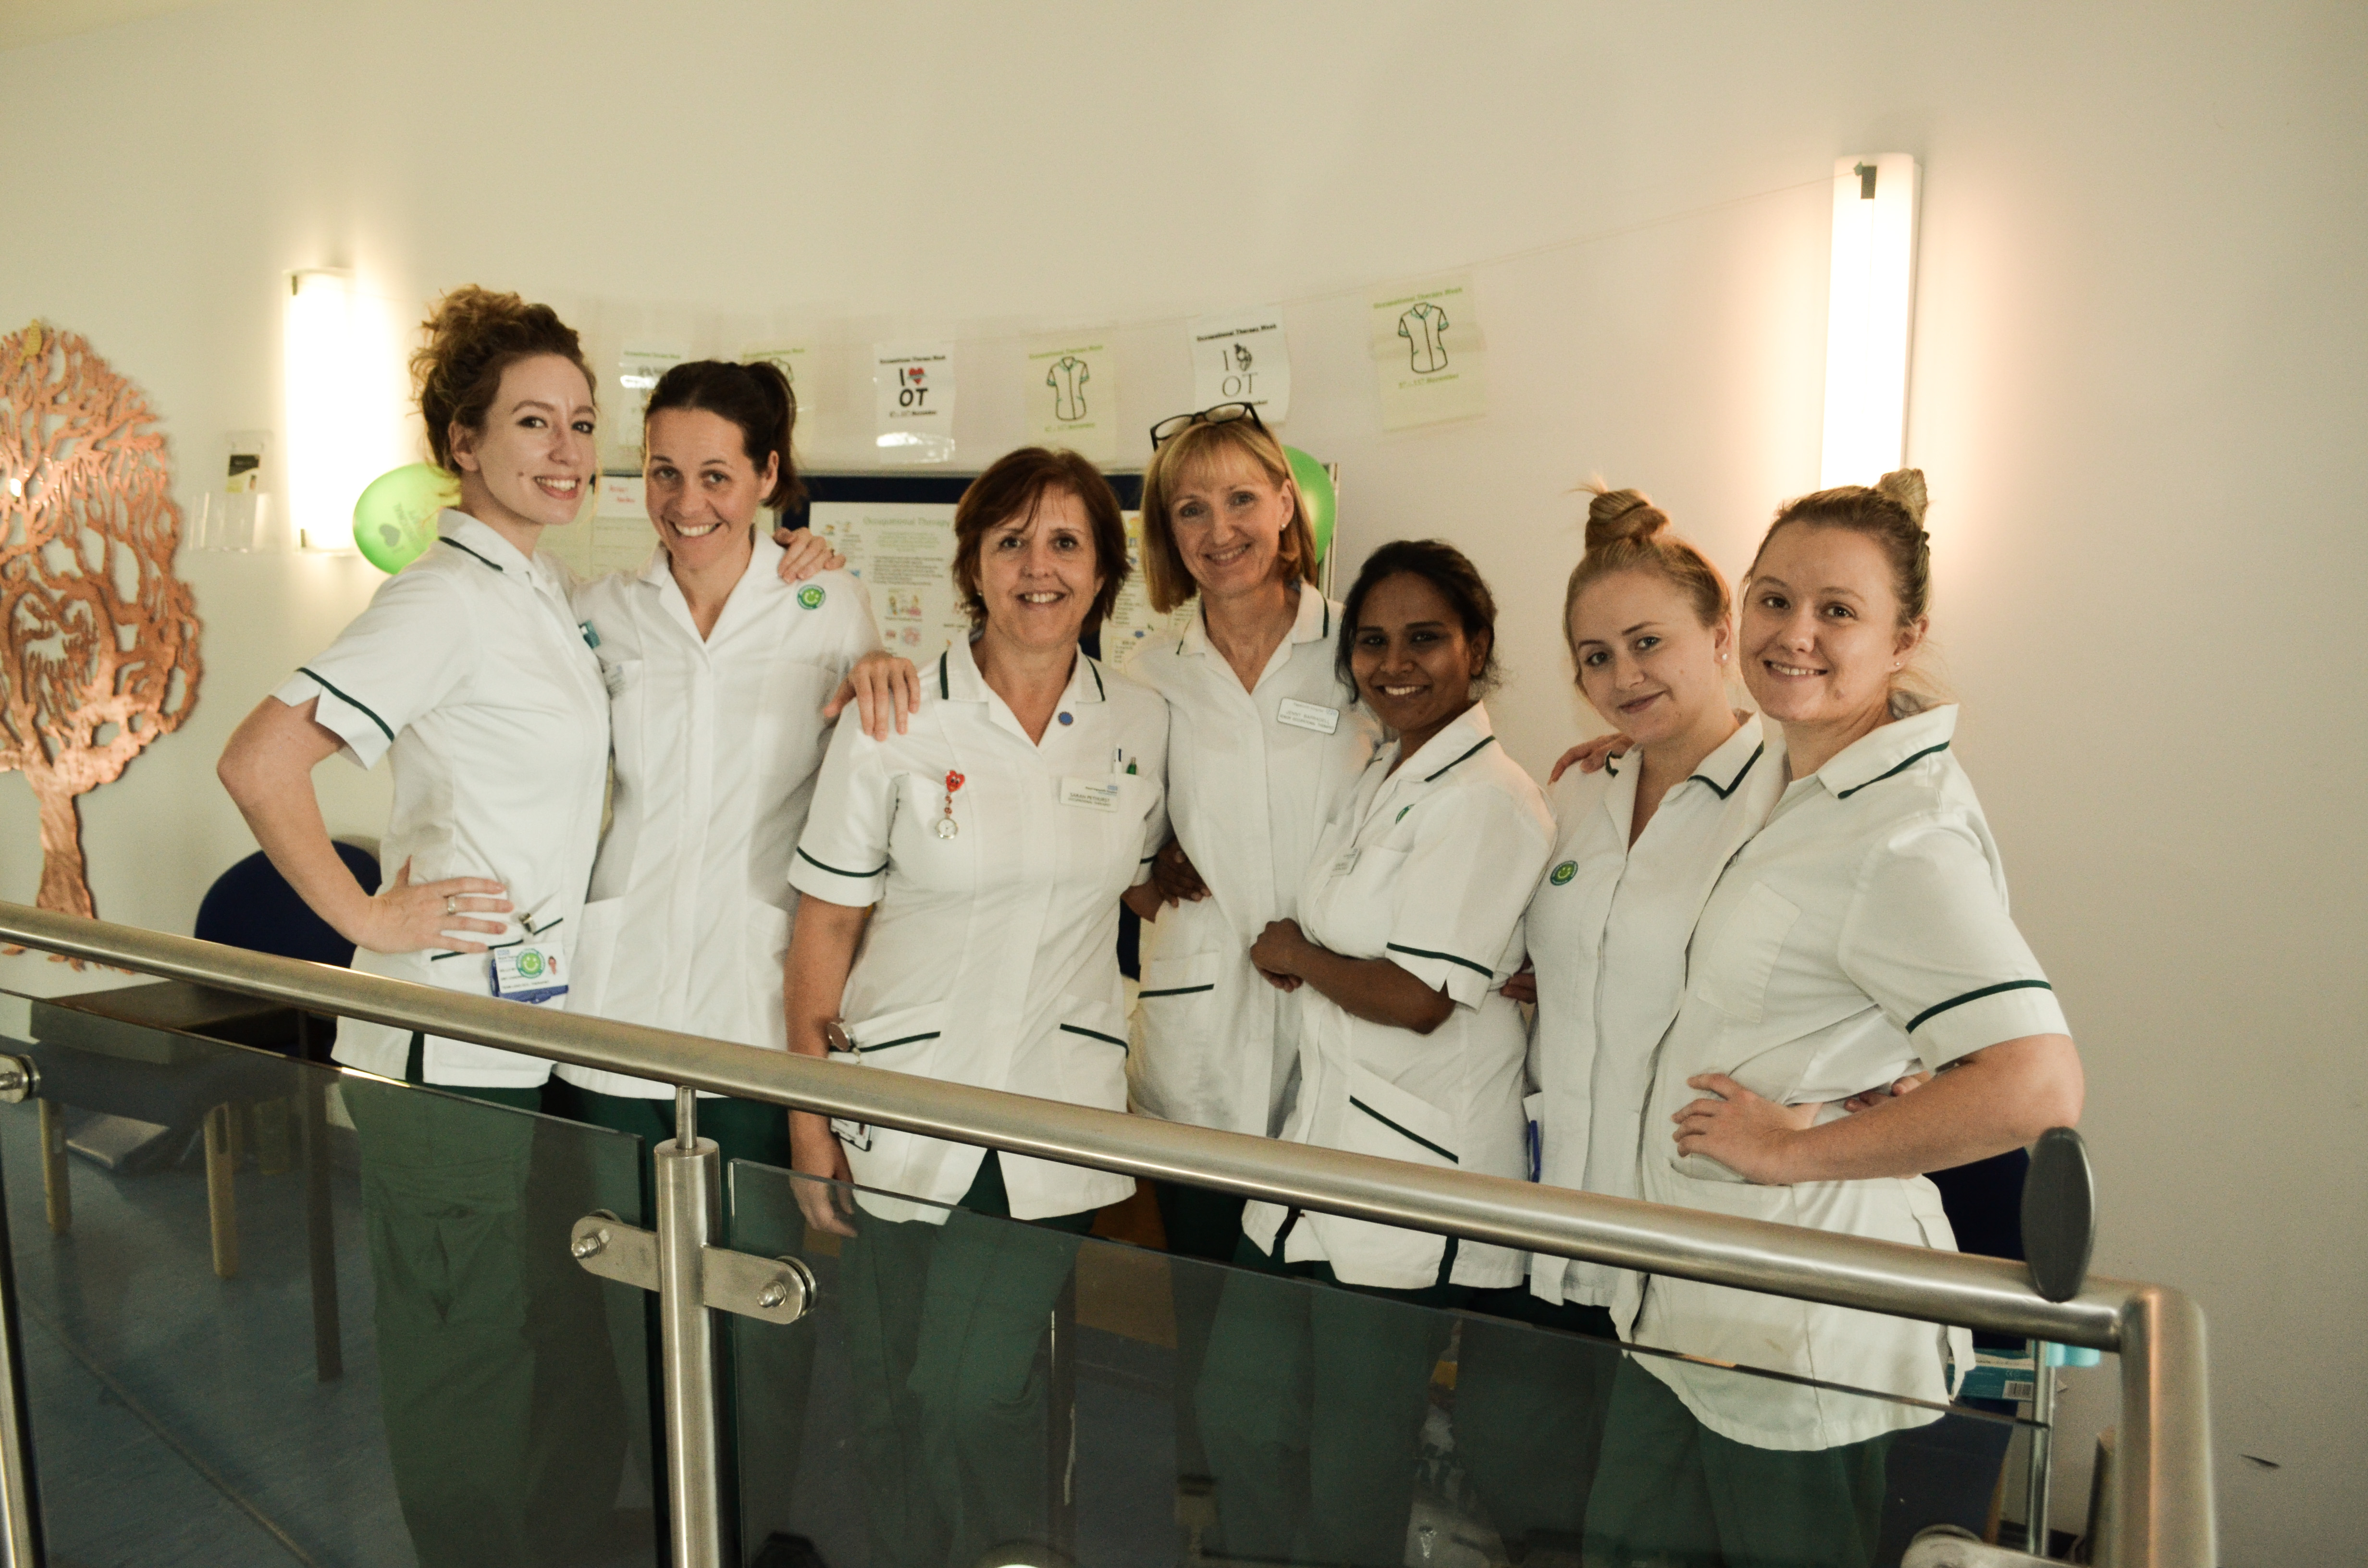 Occupational therapists raise awareness of their unique and vital role